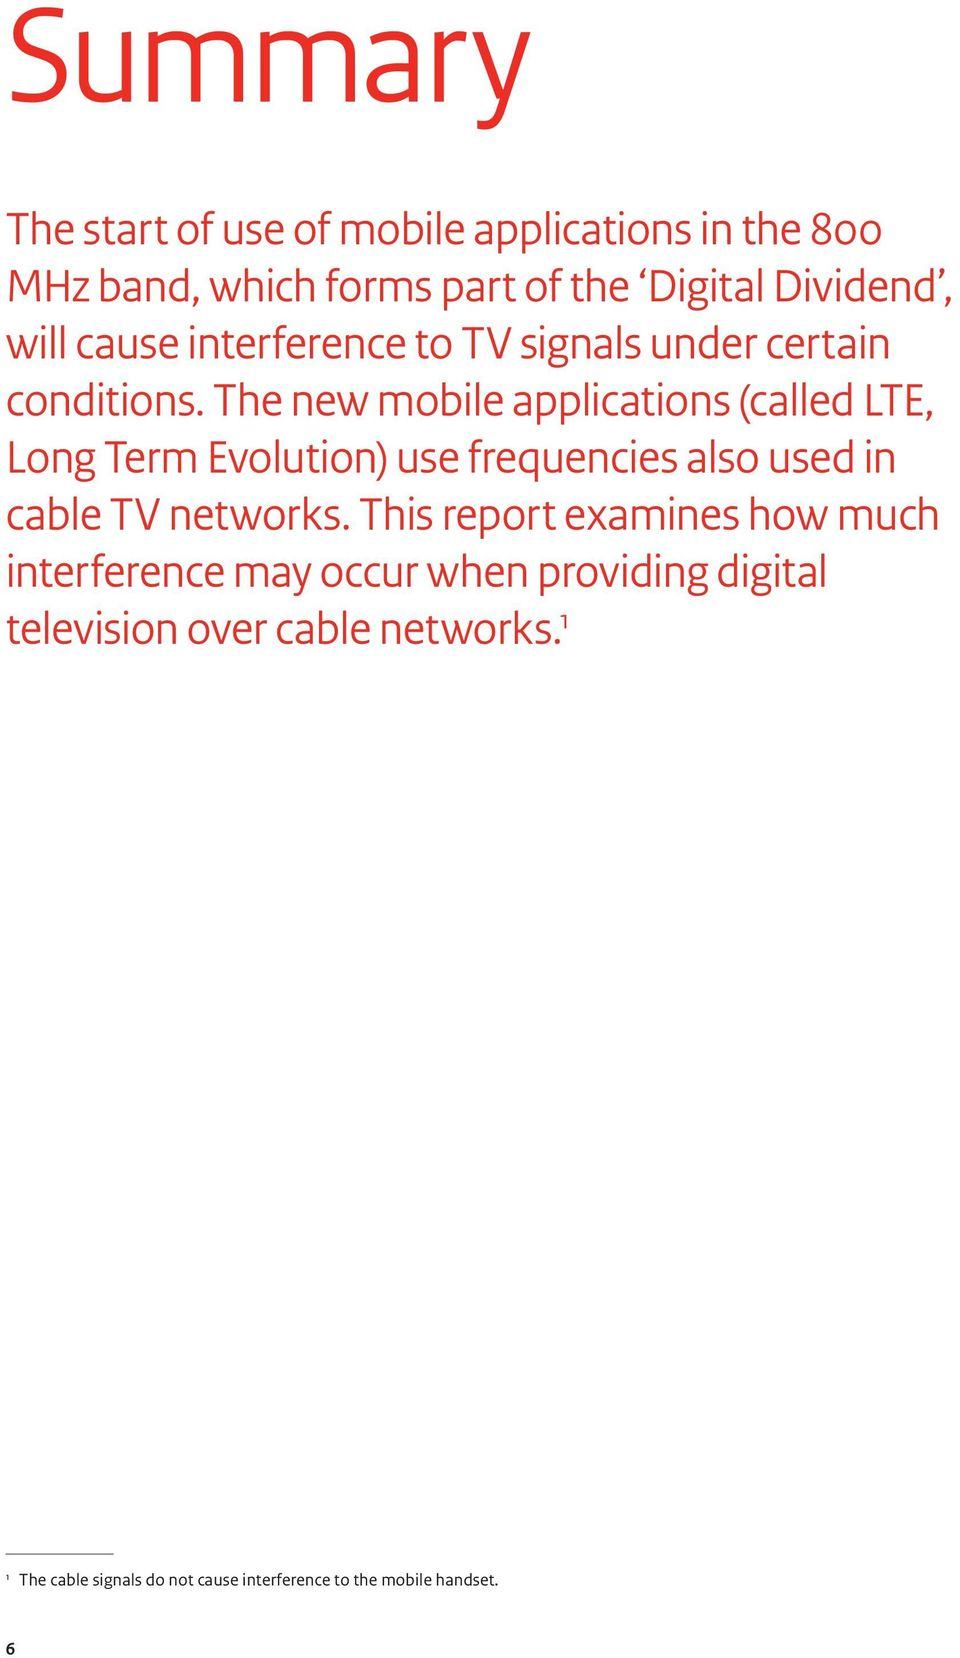 The new mobile applications (called LTE, Long Term Evolution) use frequencies also used in cable TV networks.